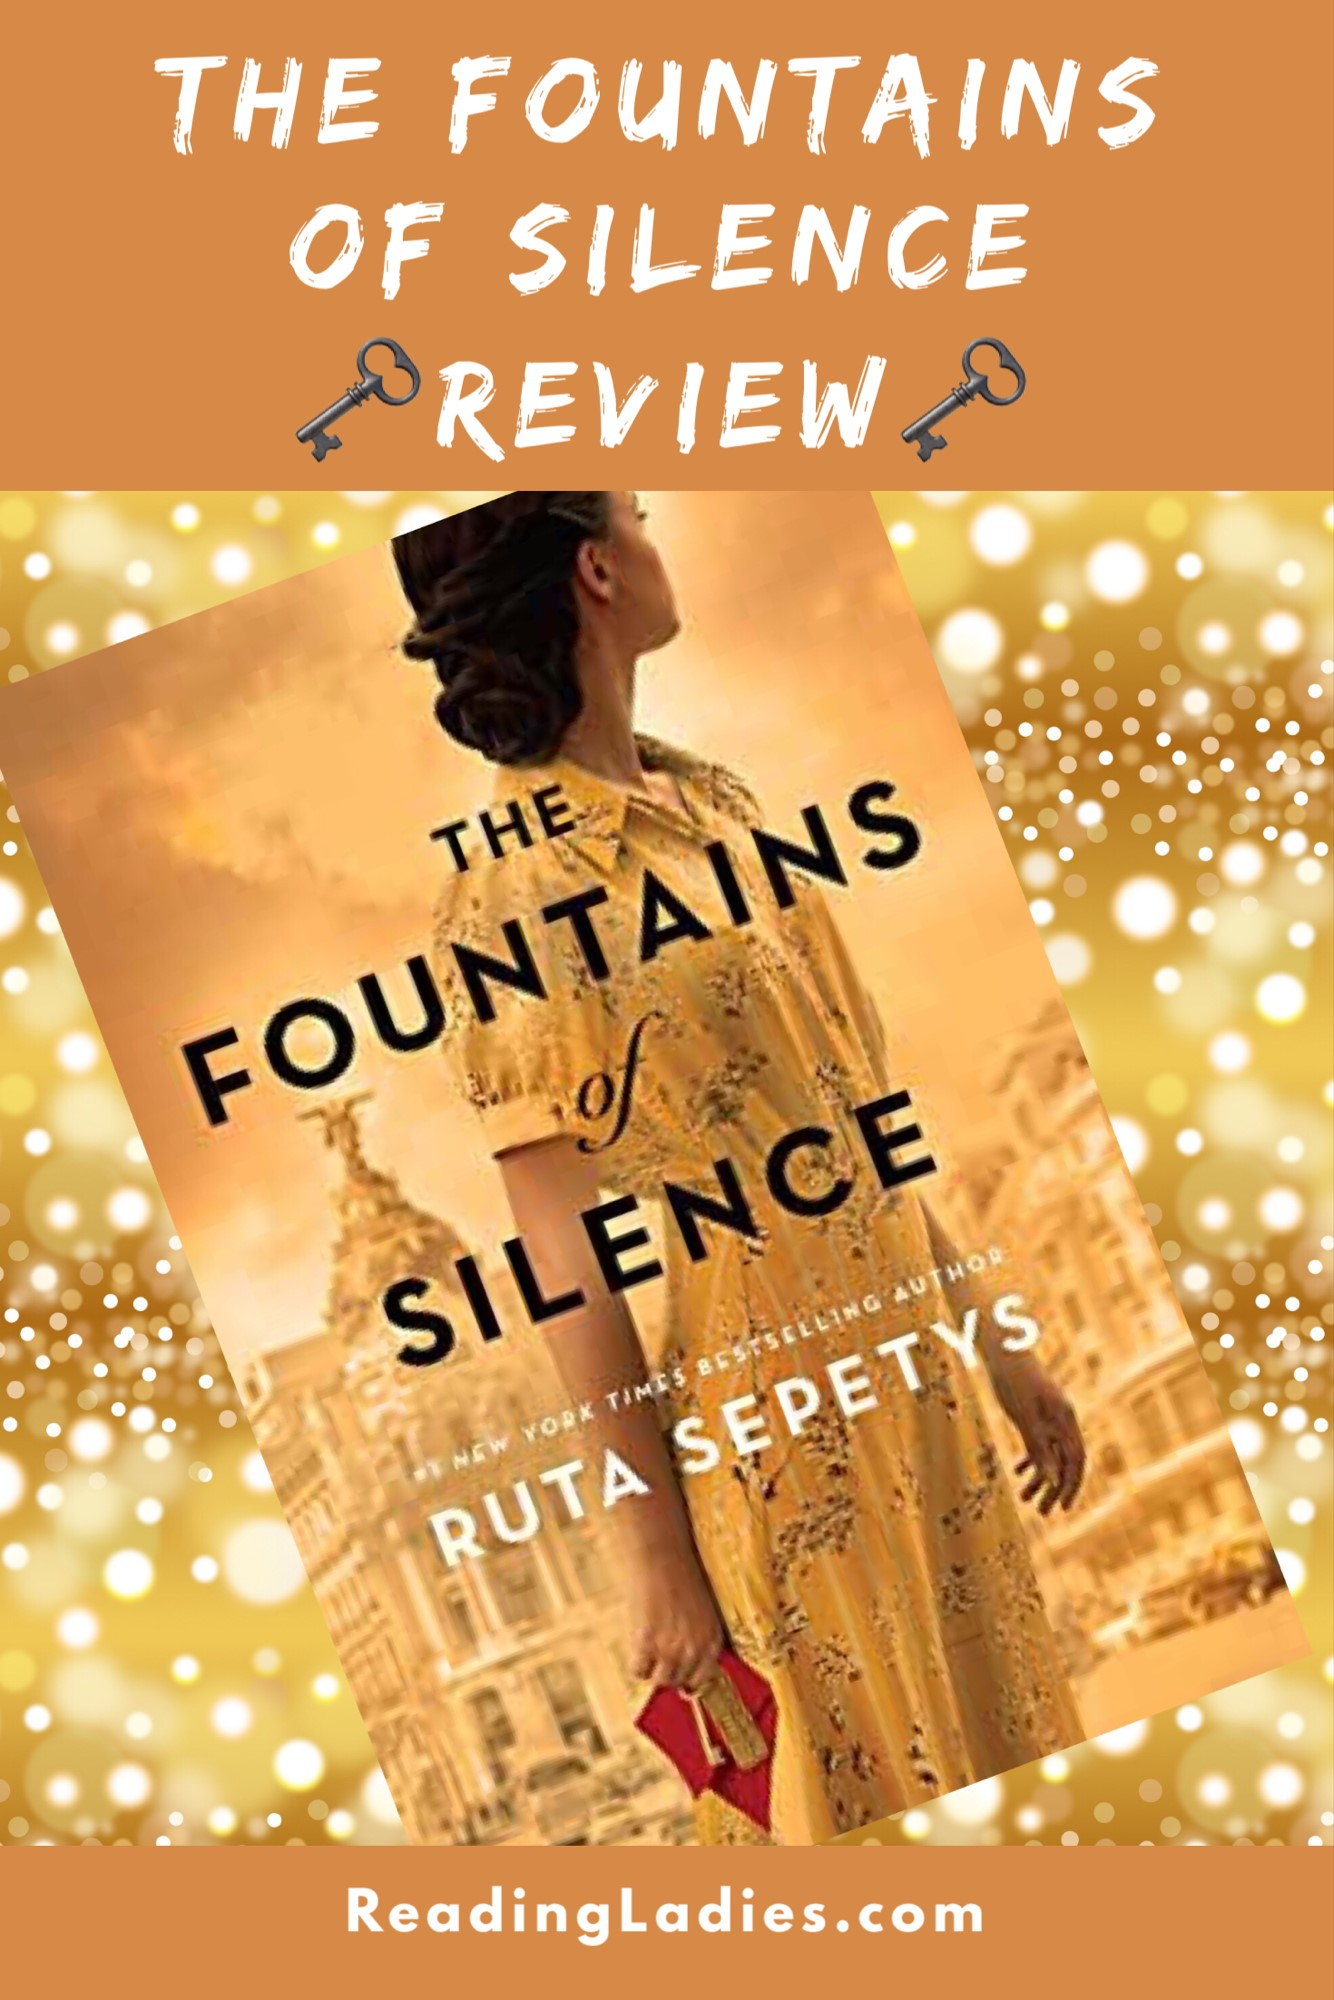 The Fountains of Silence Review